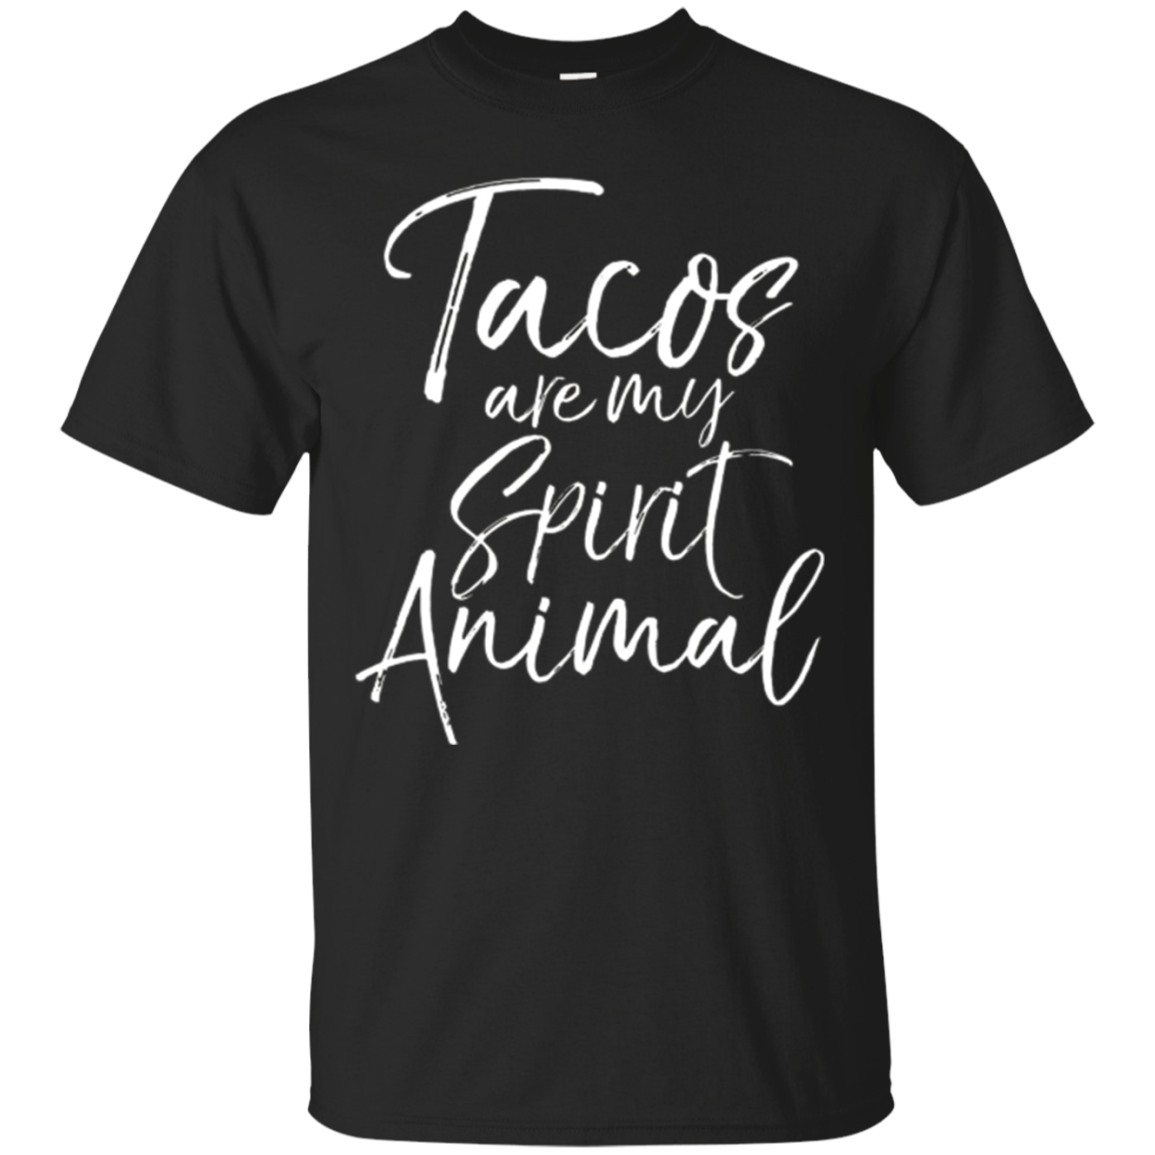 Tacos are my Spirit Animal Shirt Funny Cute Mexican Food Tee